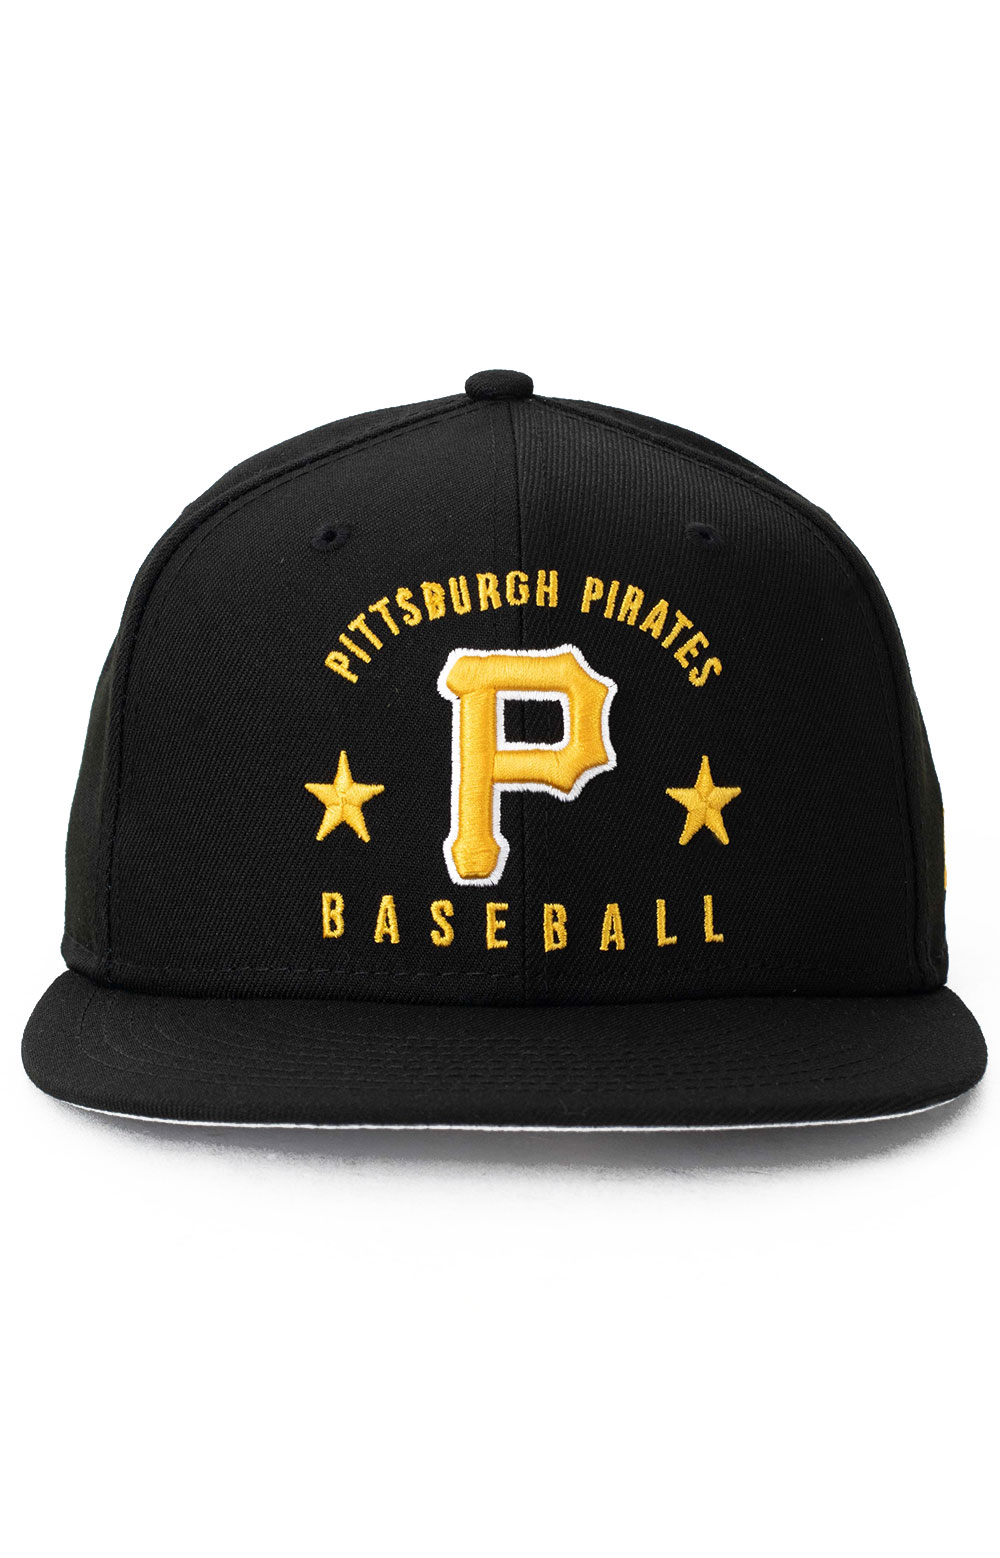 9Fifty Arched Pittsburgh Pirates Snap-Back Hat 2